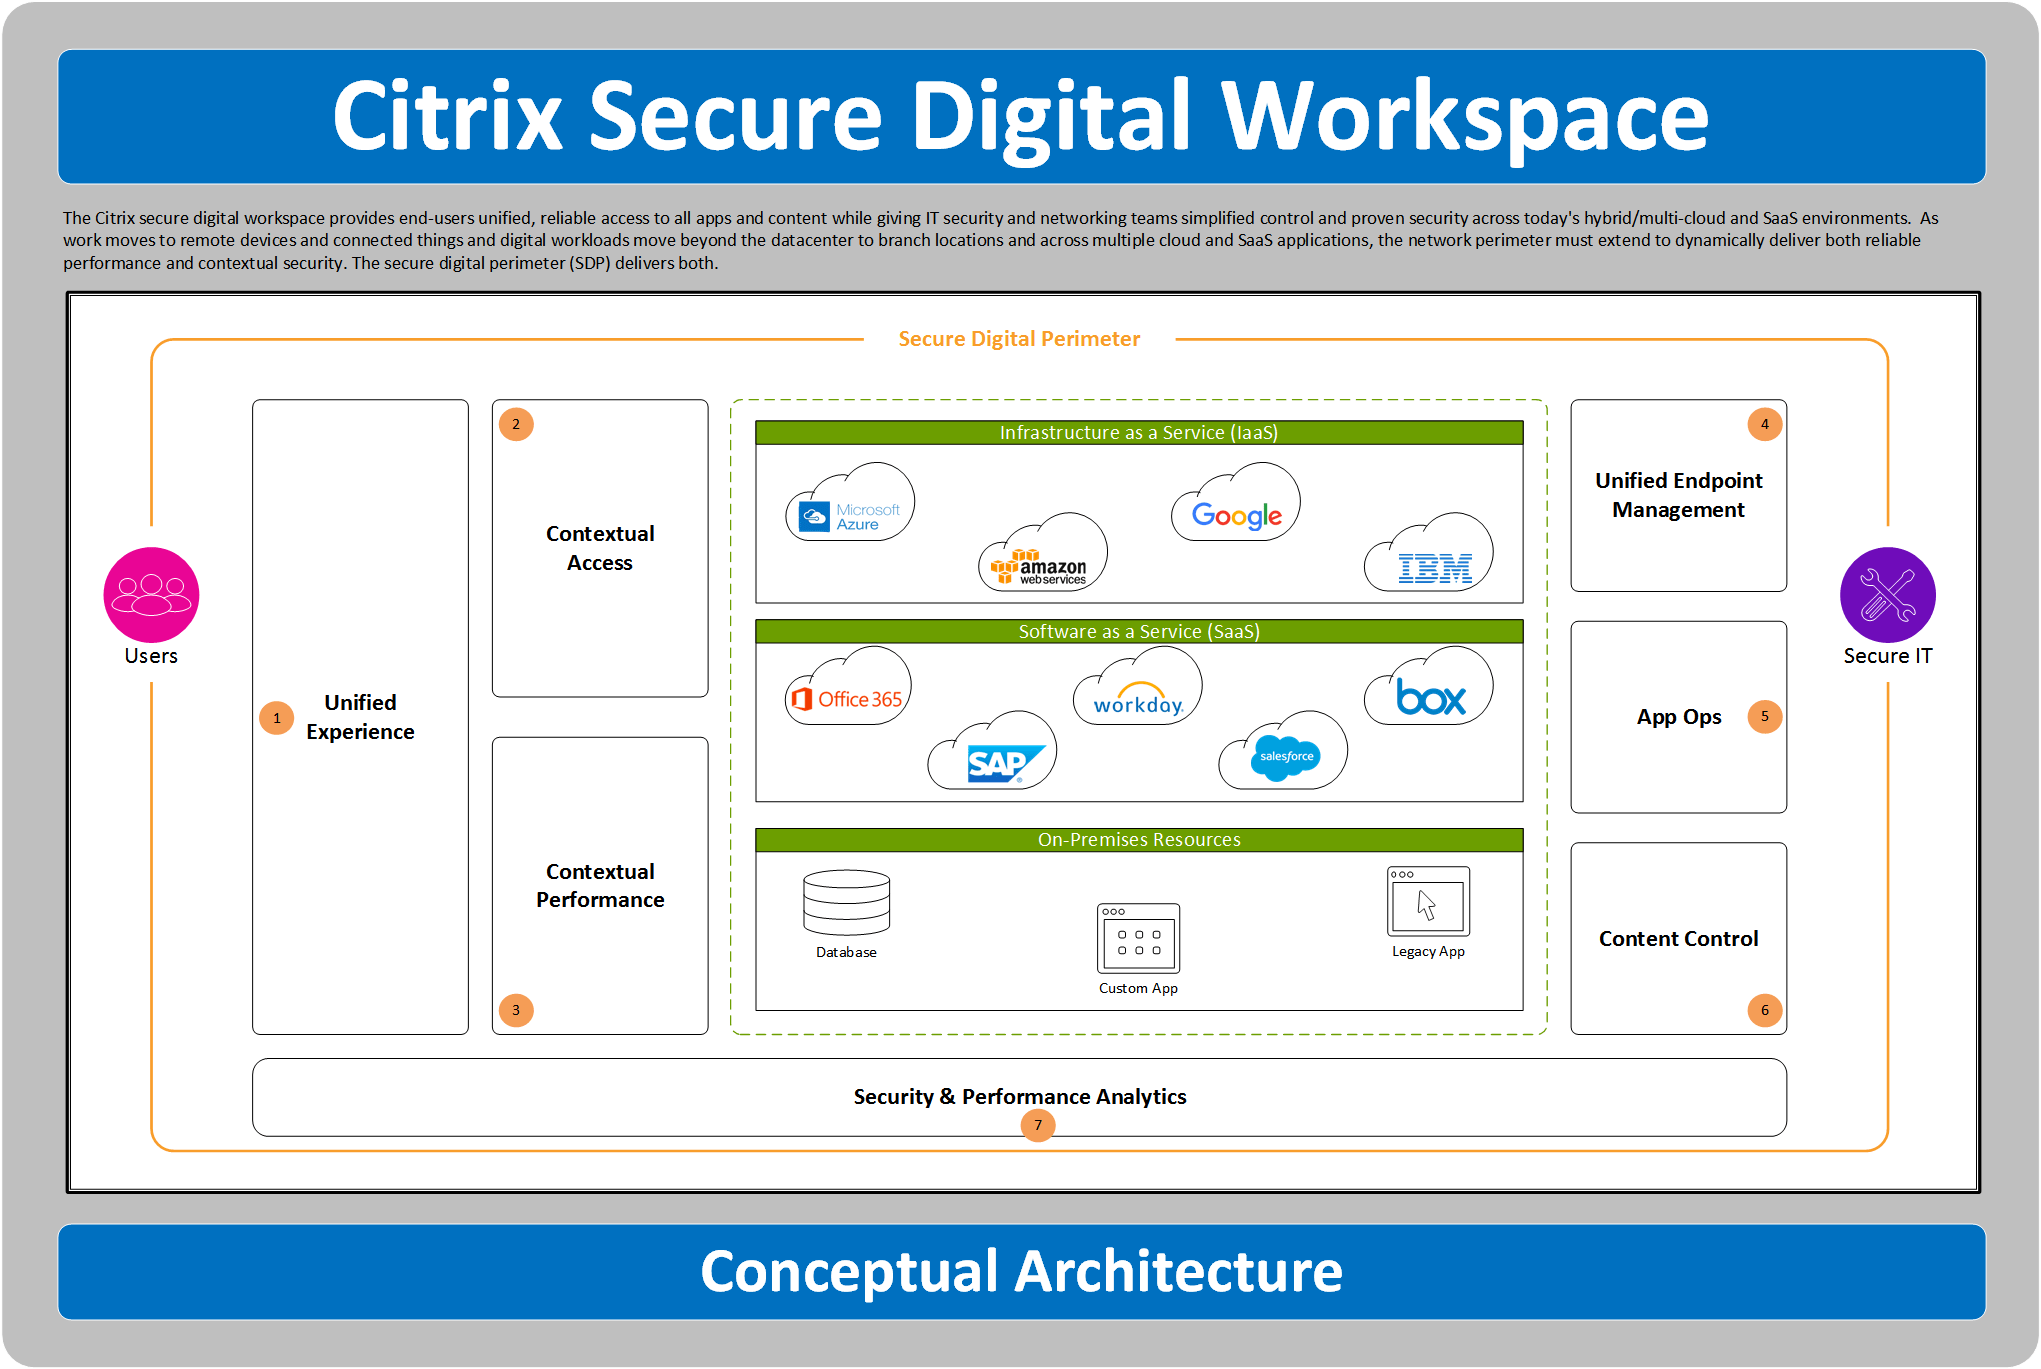 citrix architecture diagram invisible fence gps workspace poster  ask the architect